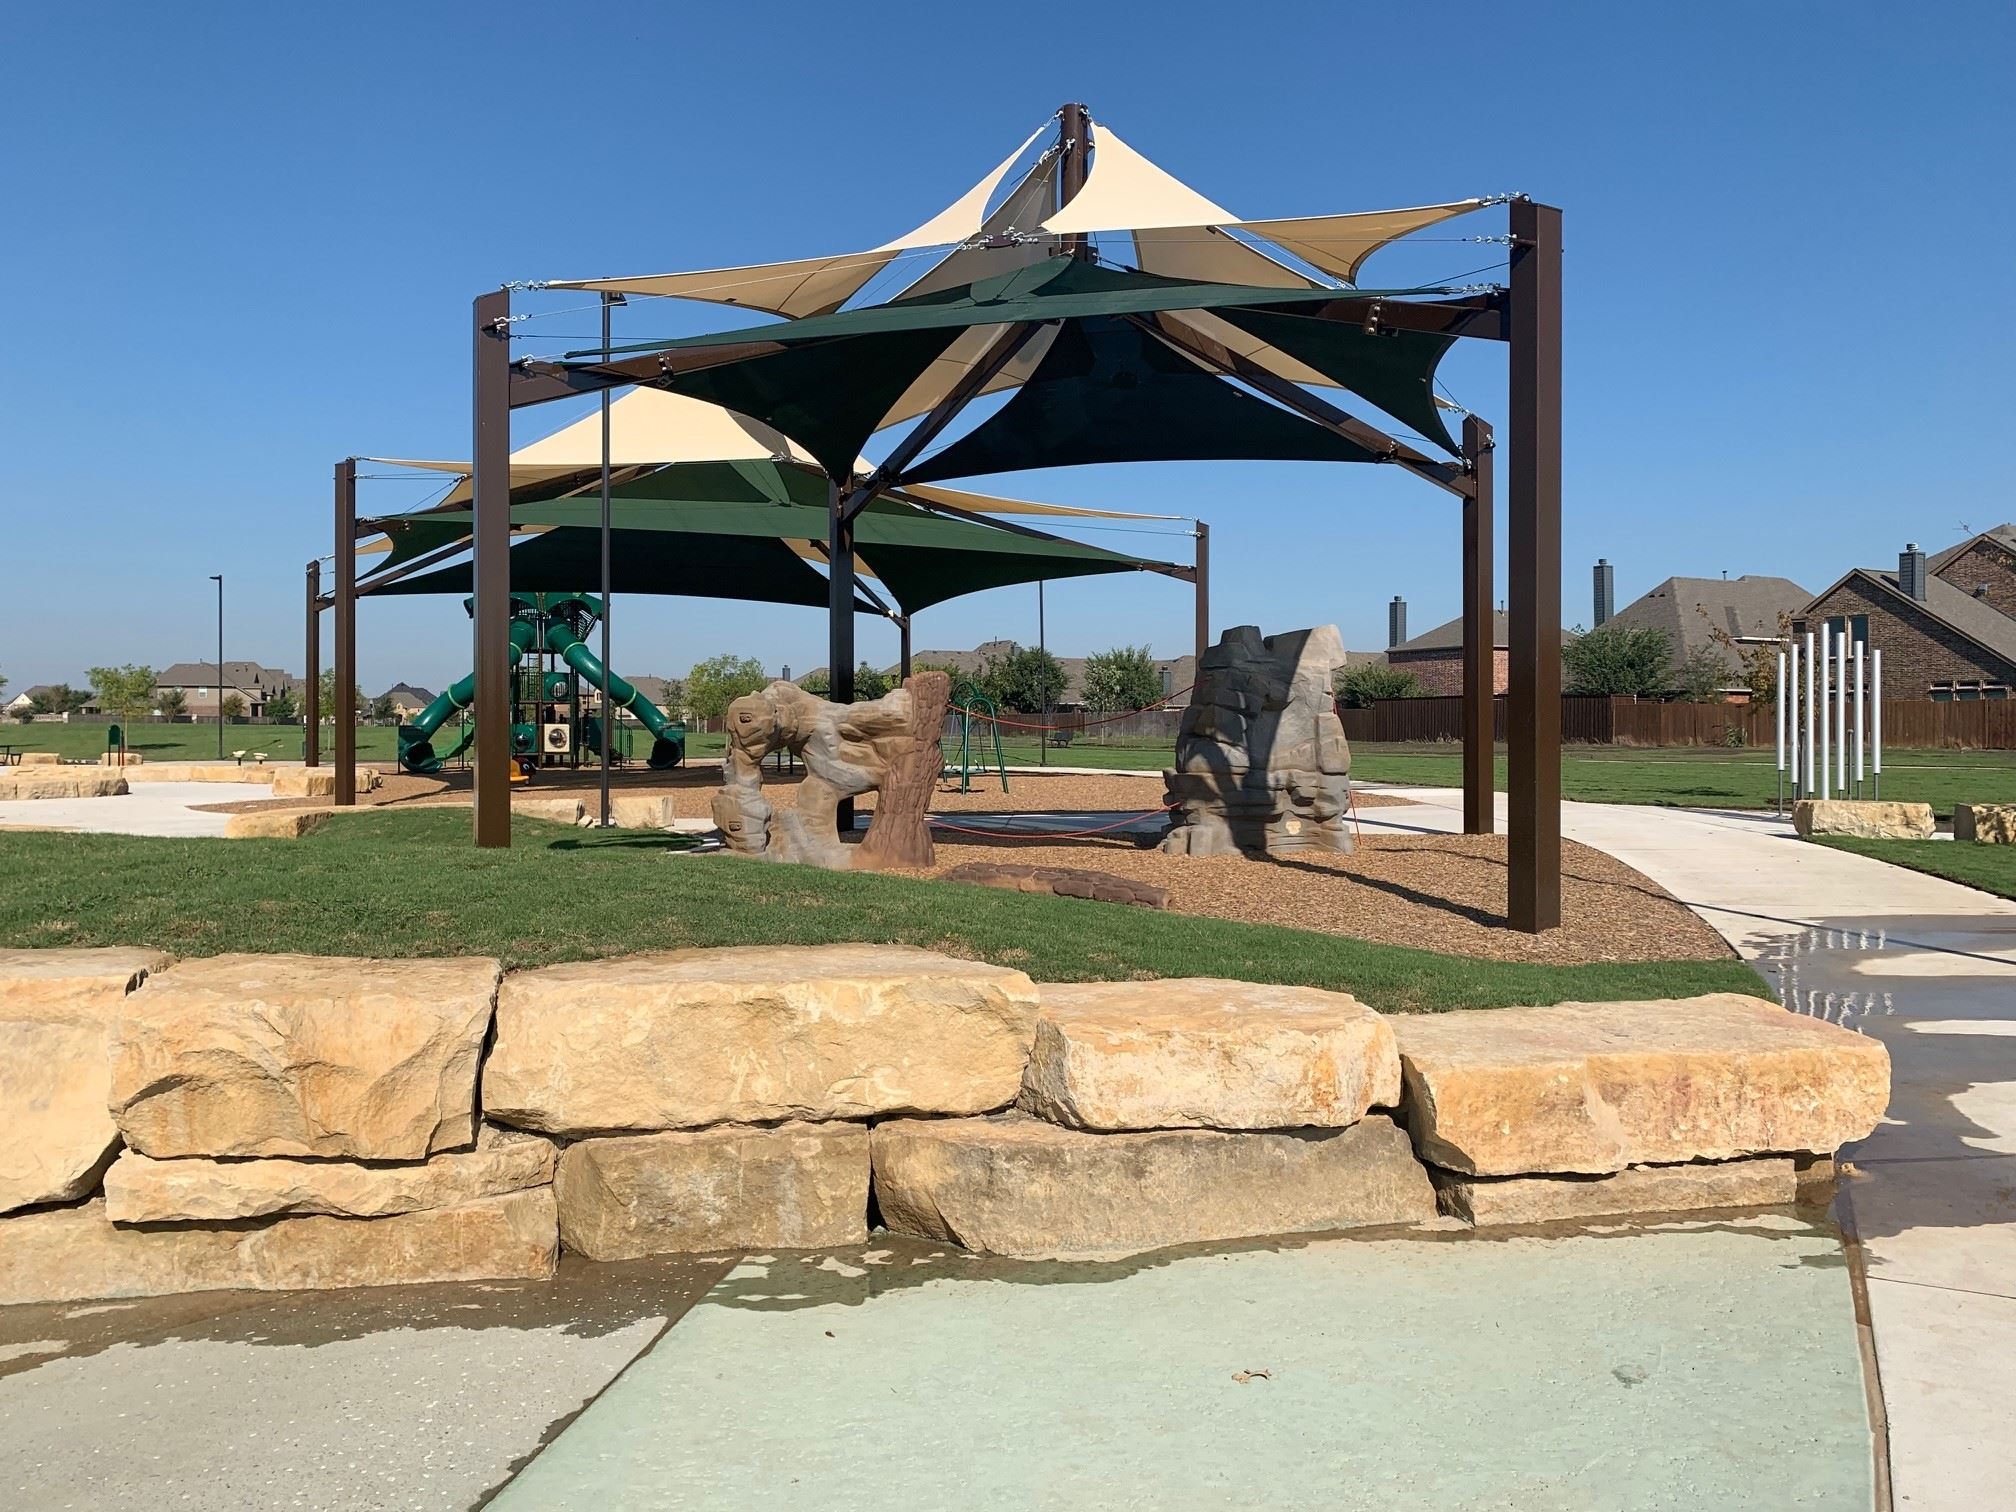 Climbing structure at George Webb Park